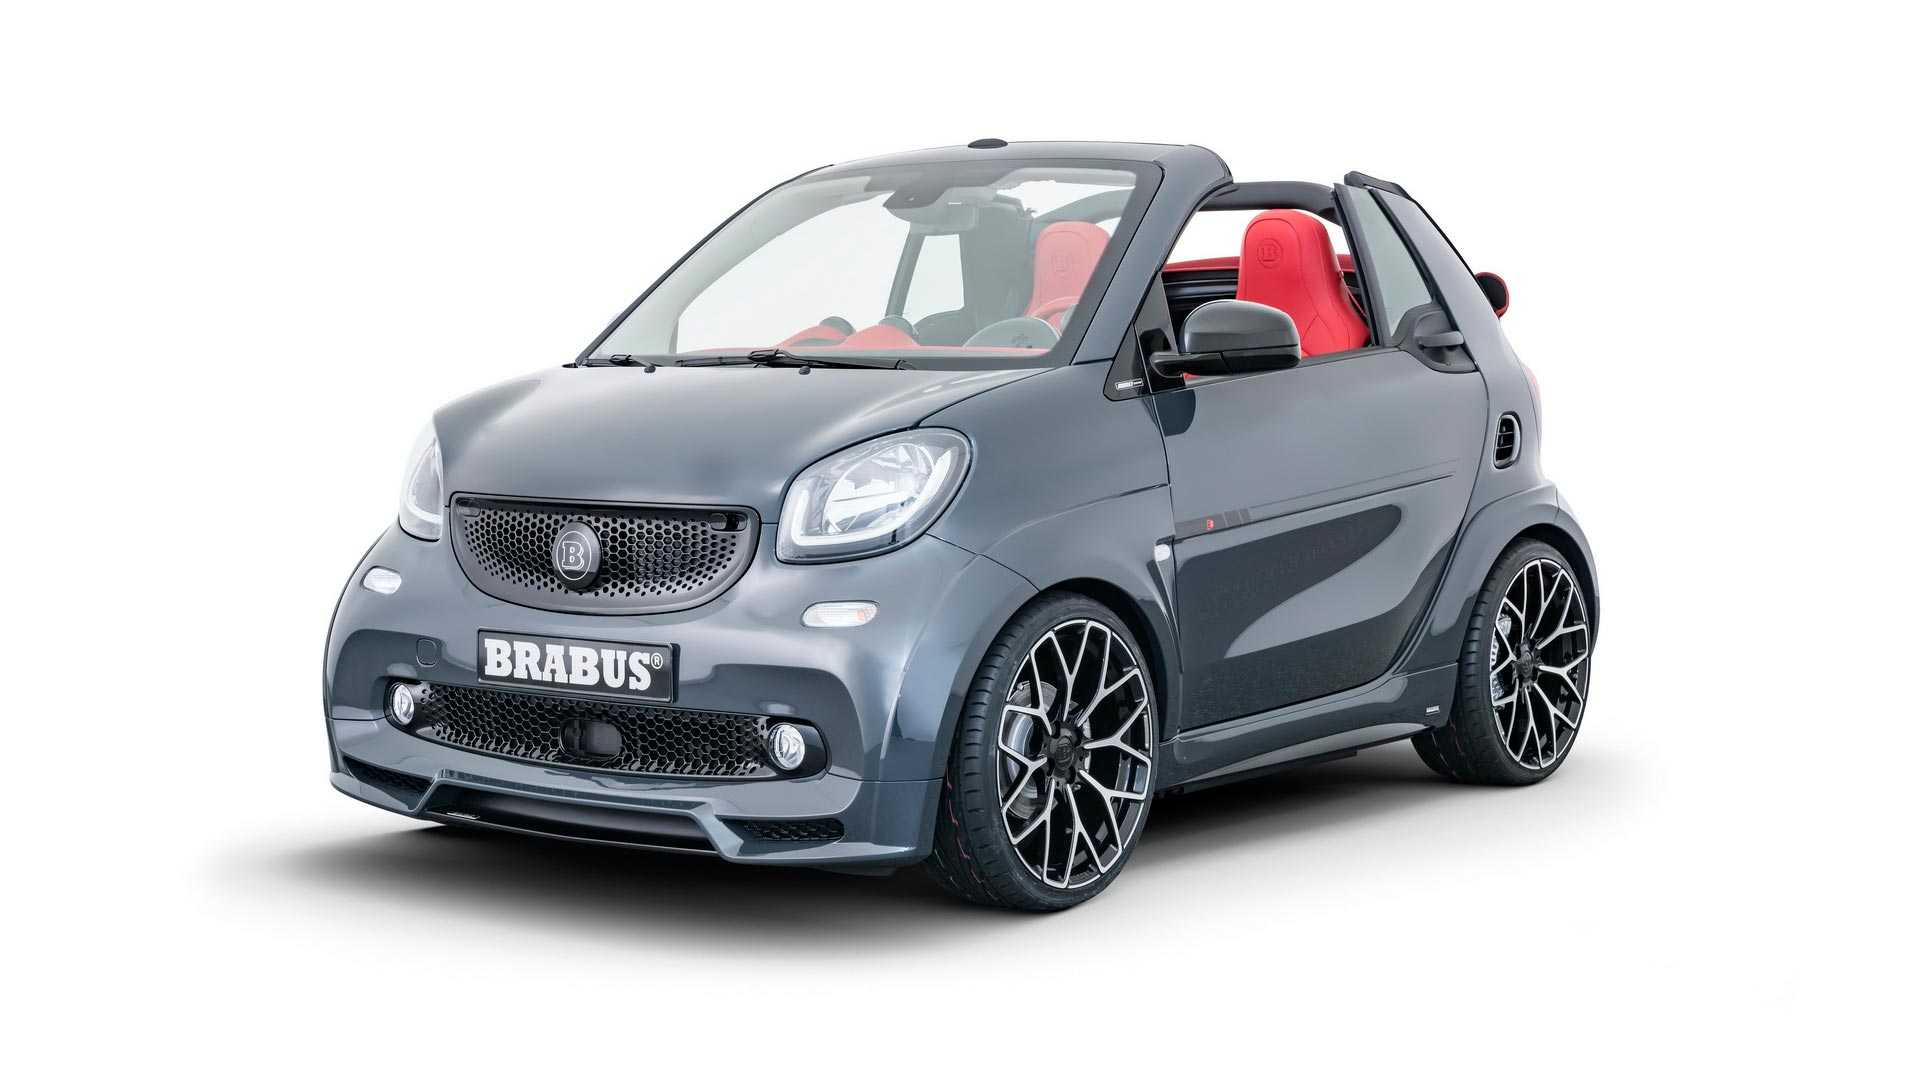 Brabus gives this Smart Fortwo a name that's bigger than the car.